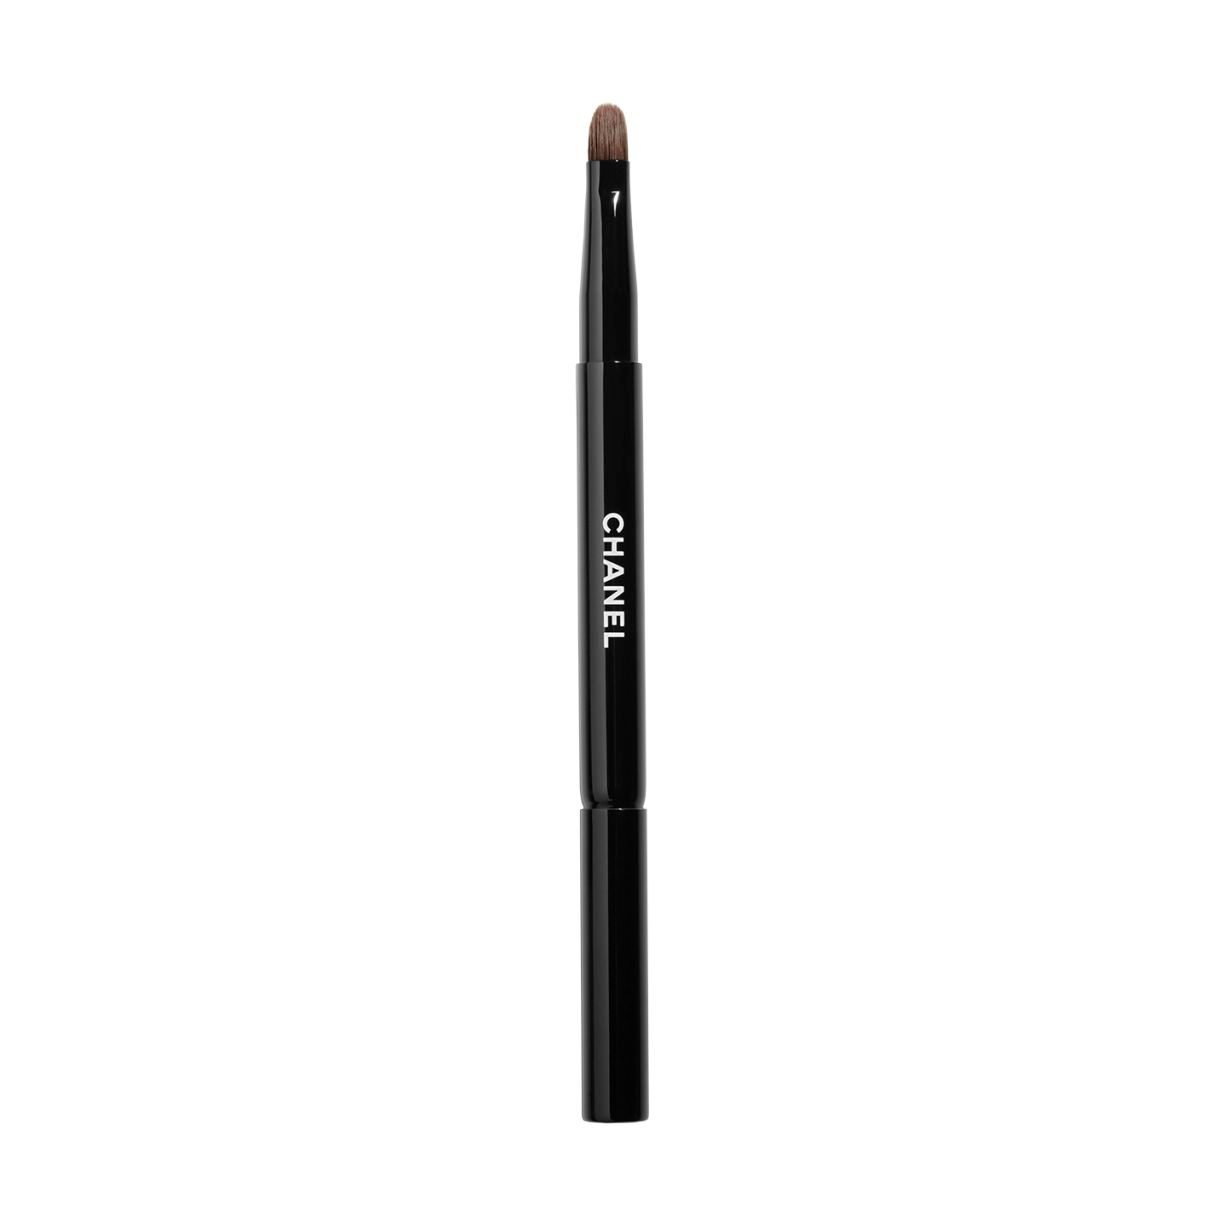 PINCEAU LÈVRES LIP BRUSH 1PCE